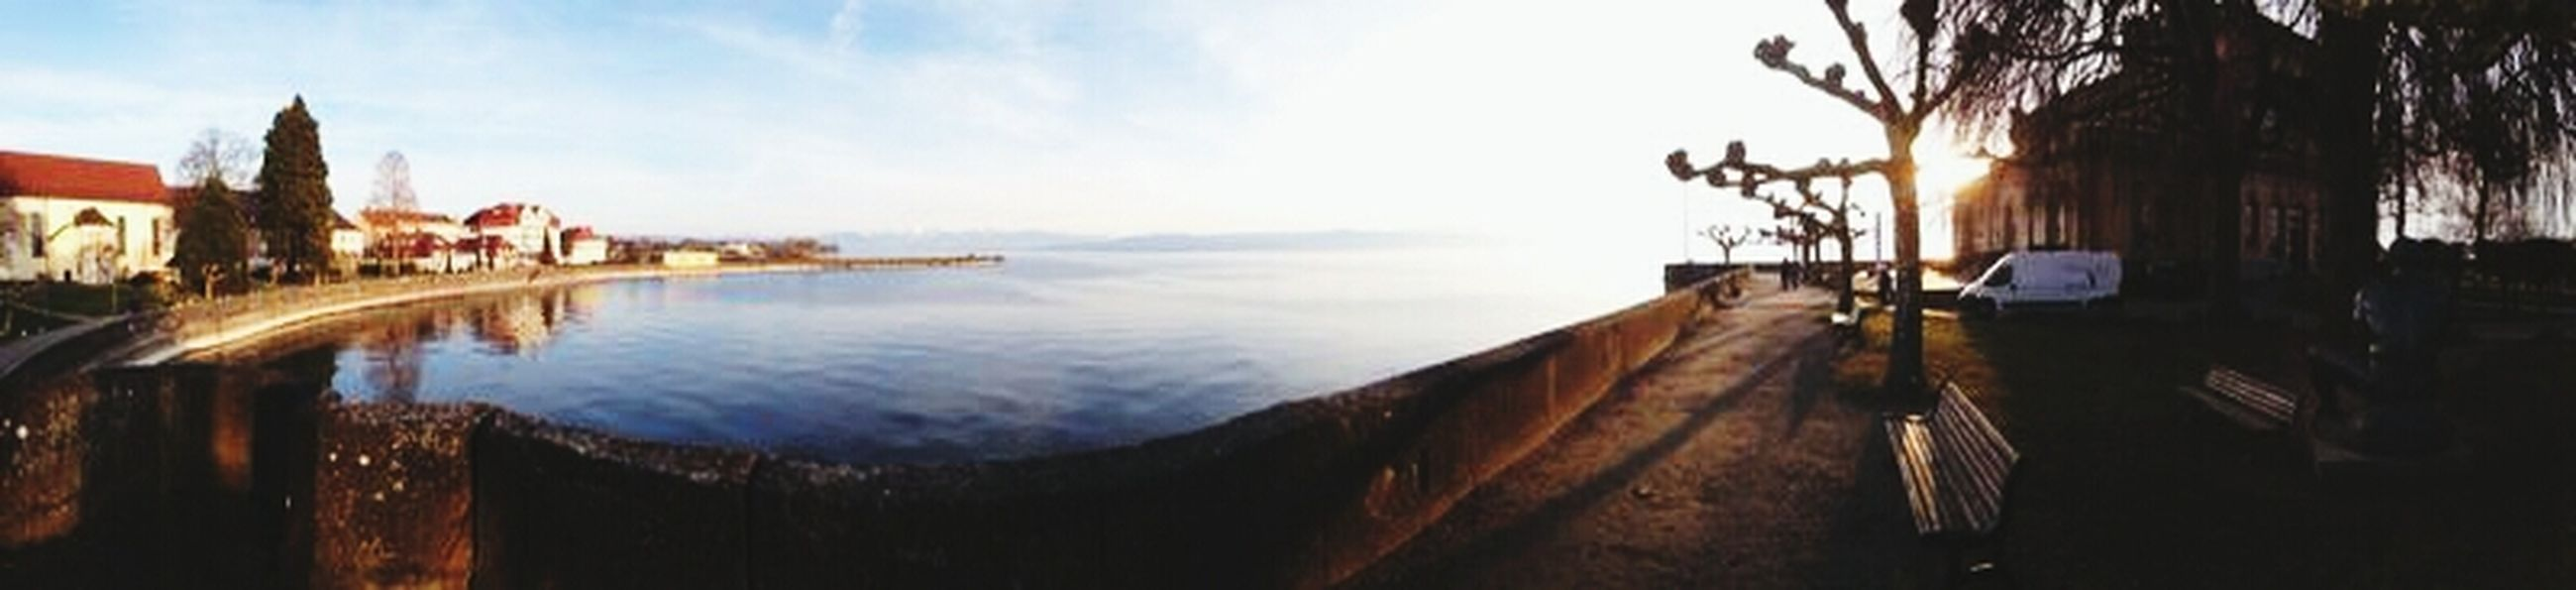 Panorama Bodensee ♥